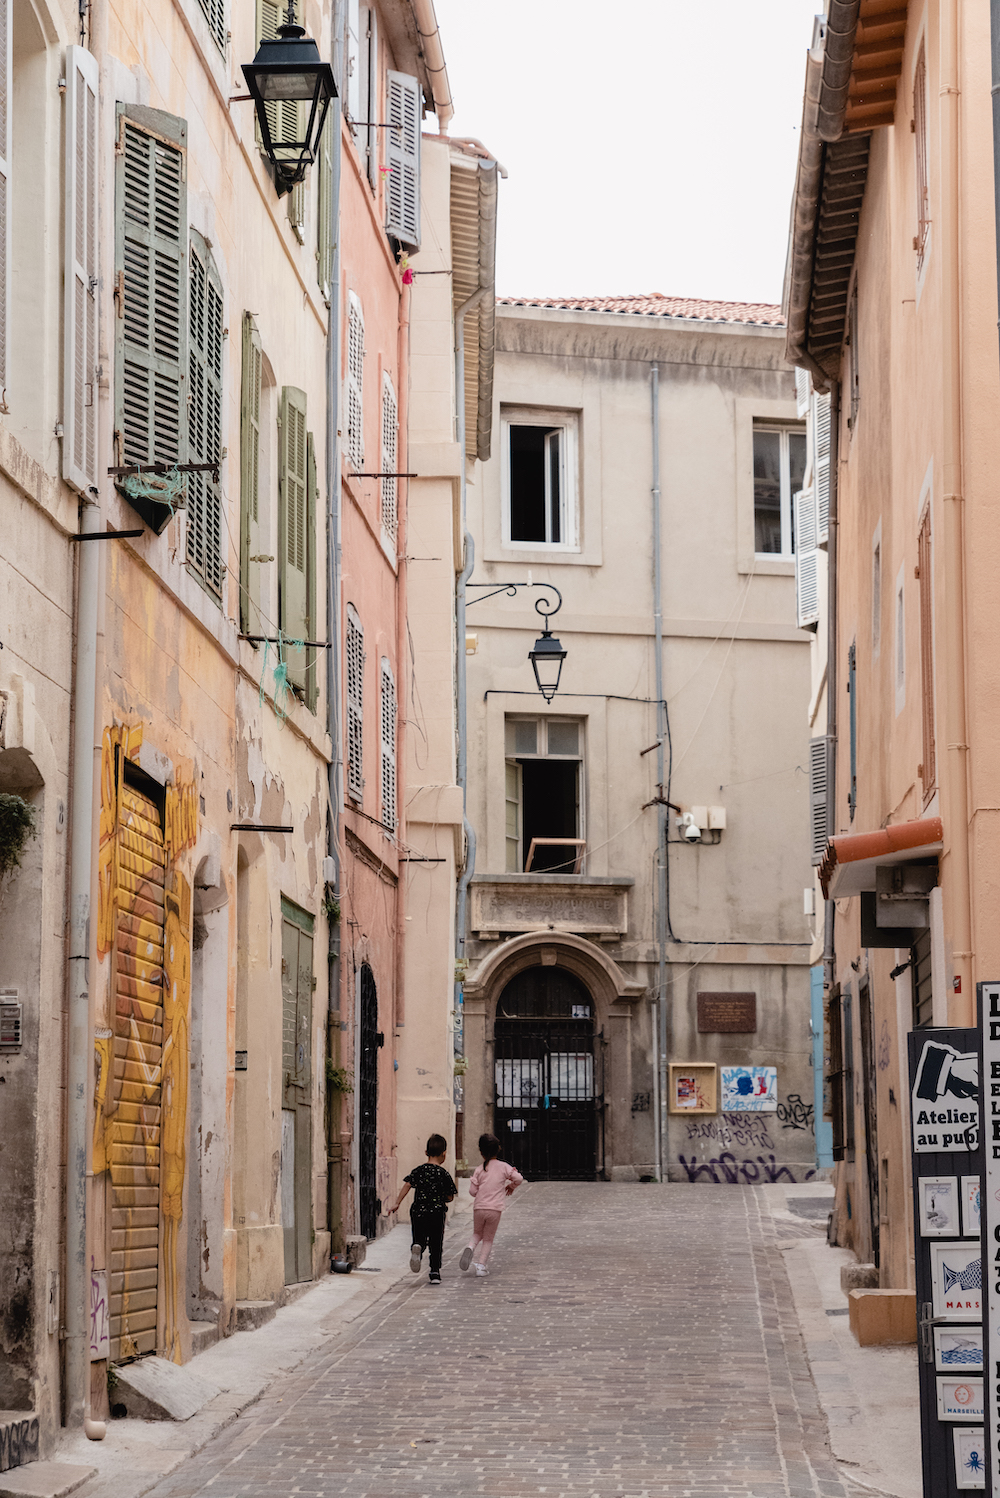 Le Panier, Things to Do in Marseille, Southern France – Travel Photography by Ben Holbrook from DriftwoodJournals.com-1720